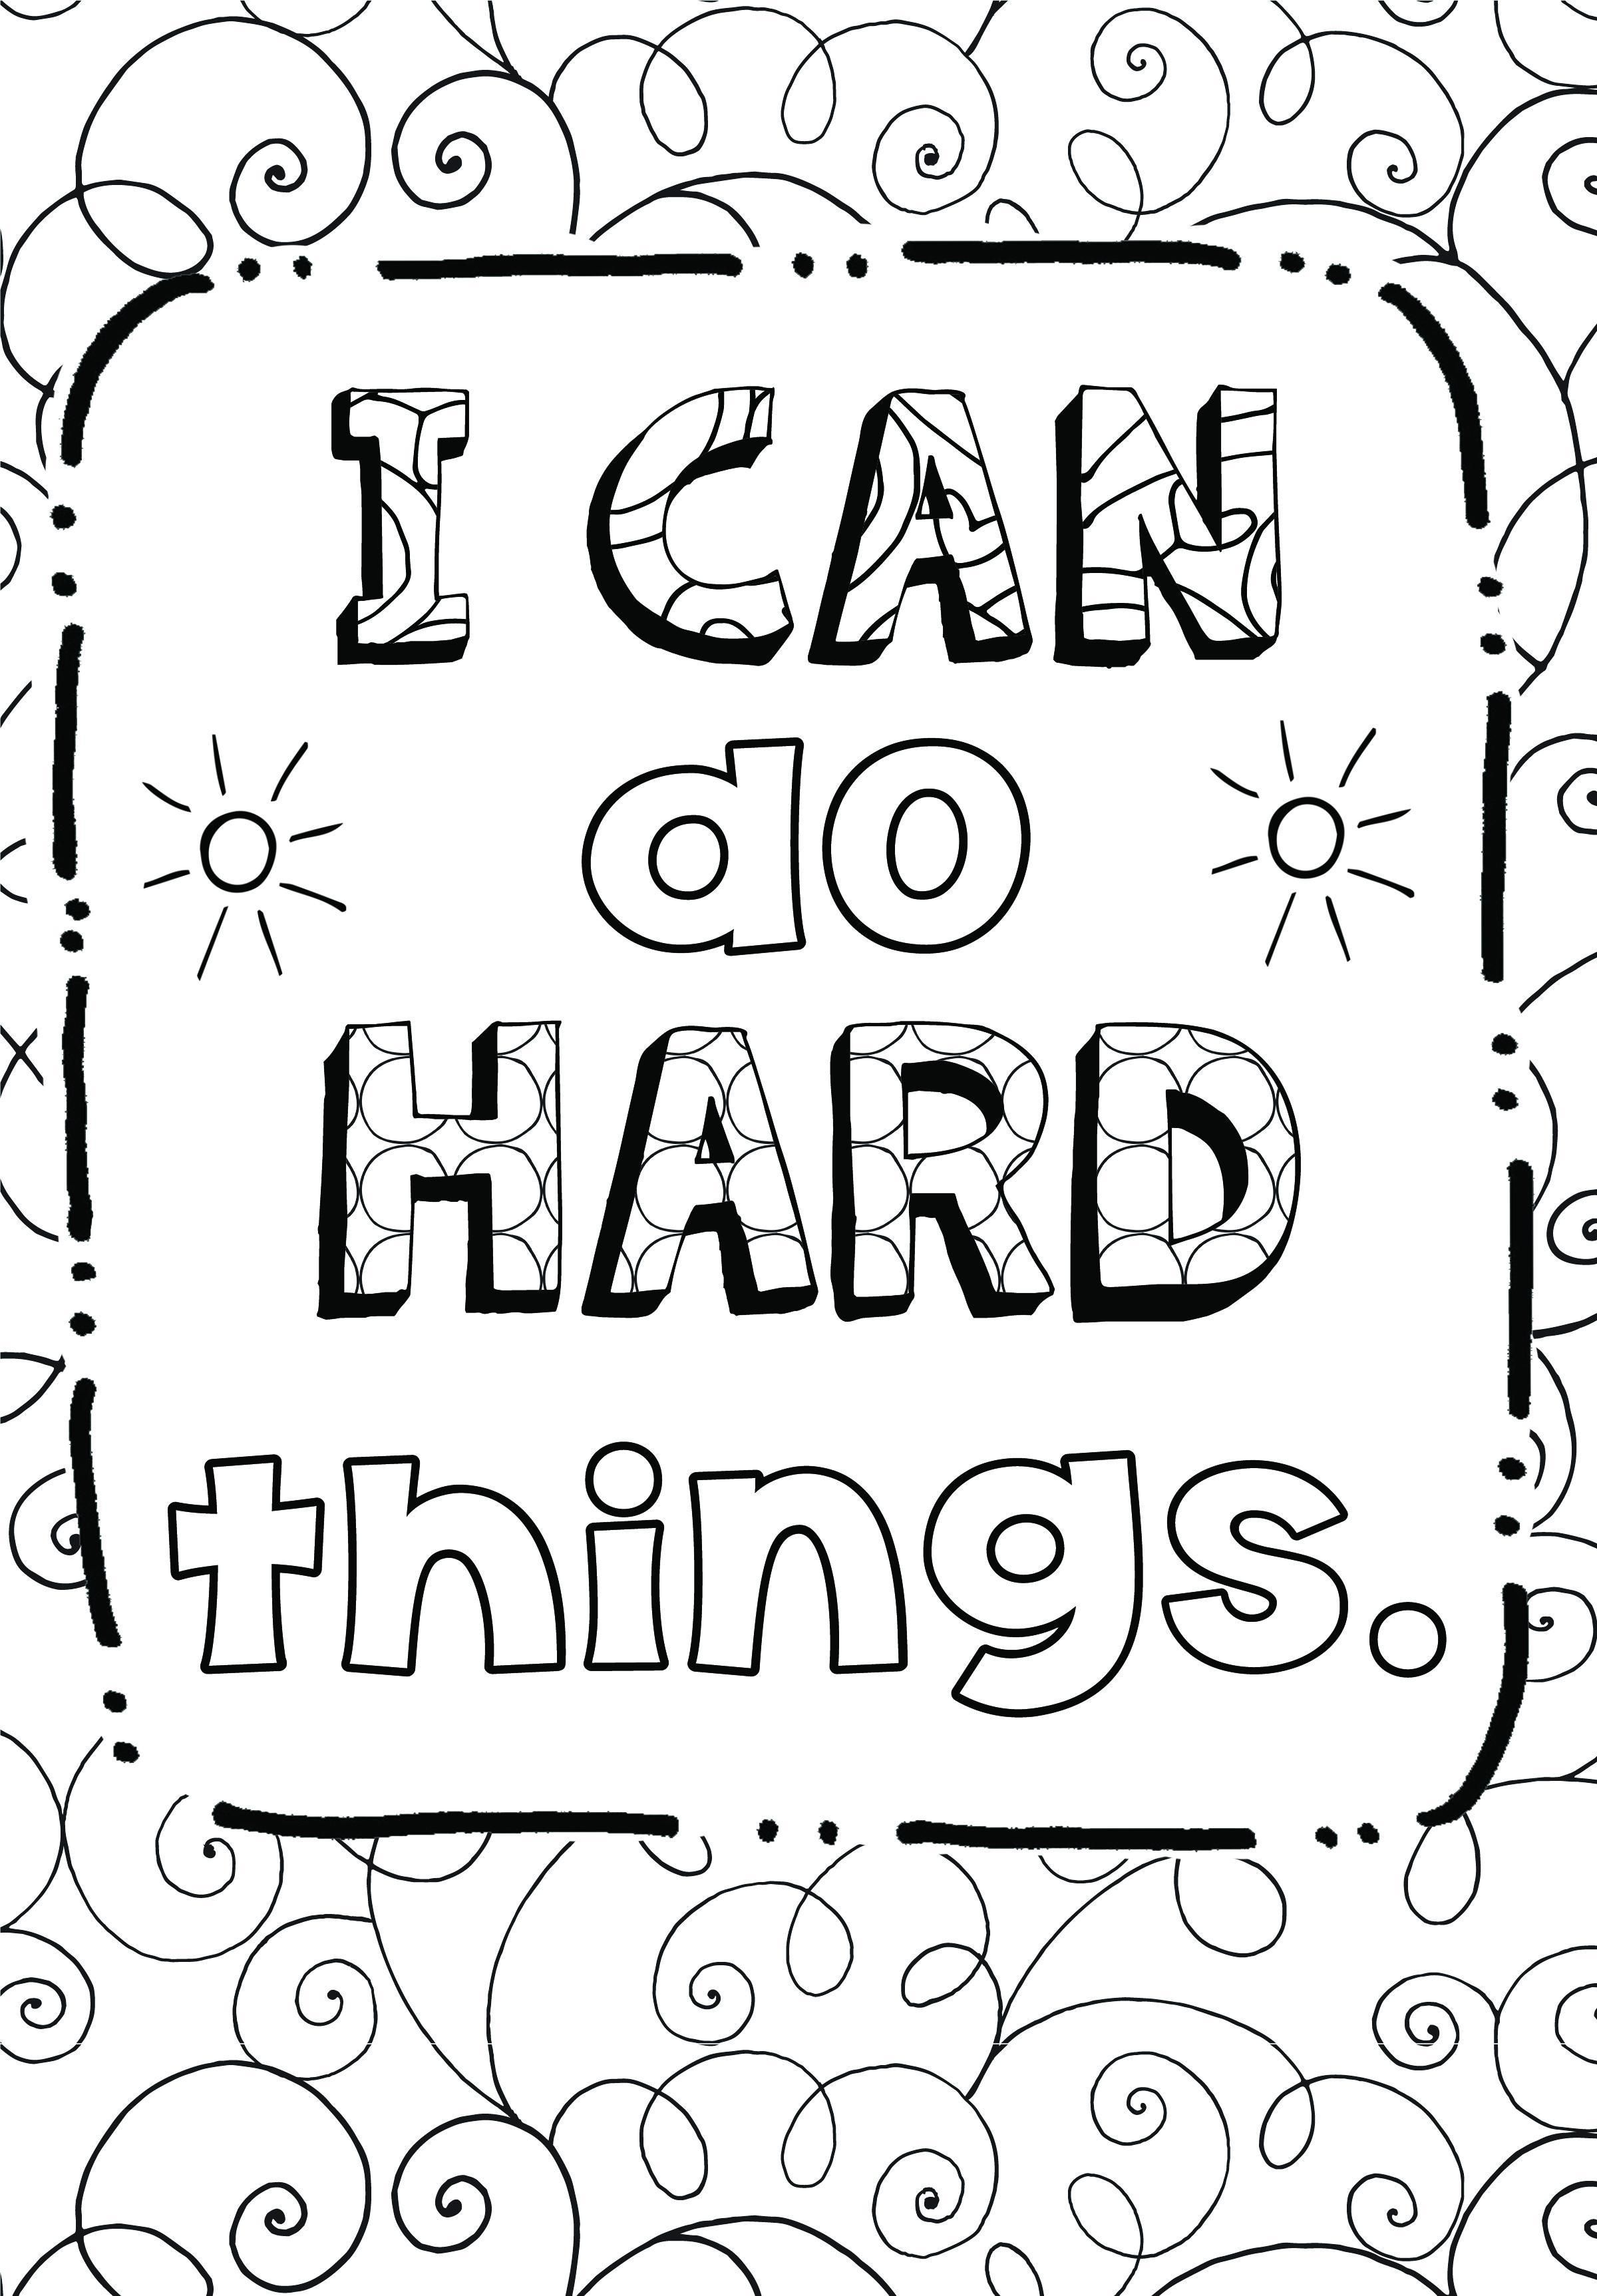 Free coloring pages growth mindset - Free Coloring Page Growth Mindset